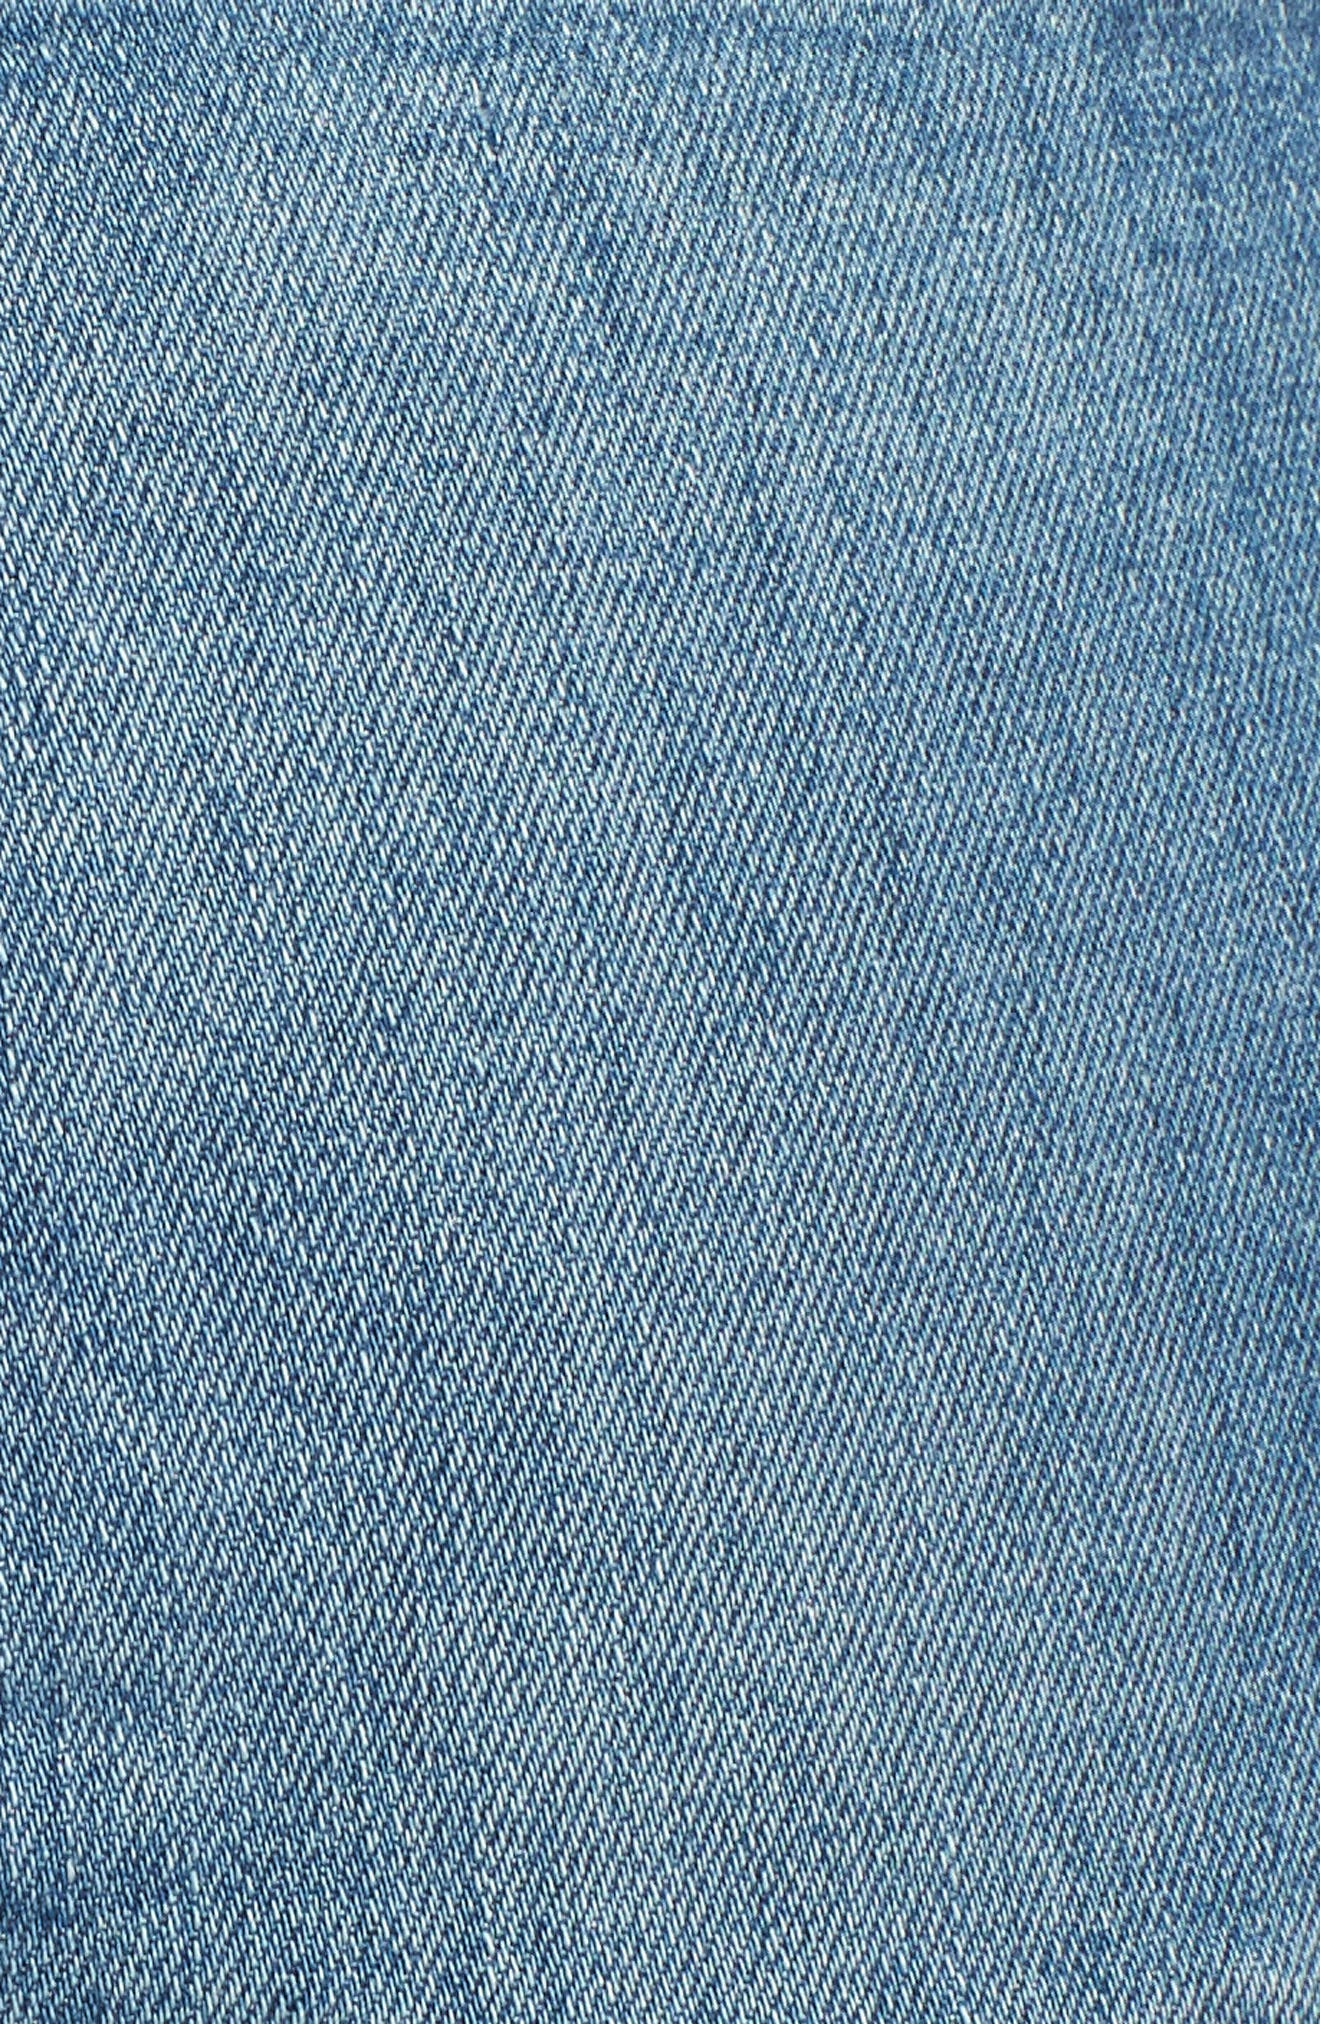 Ripped Ankle Skinny Jeans,                             Alternate thumbnail 6, color,                             Symphony Blue